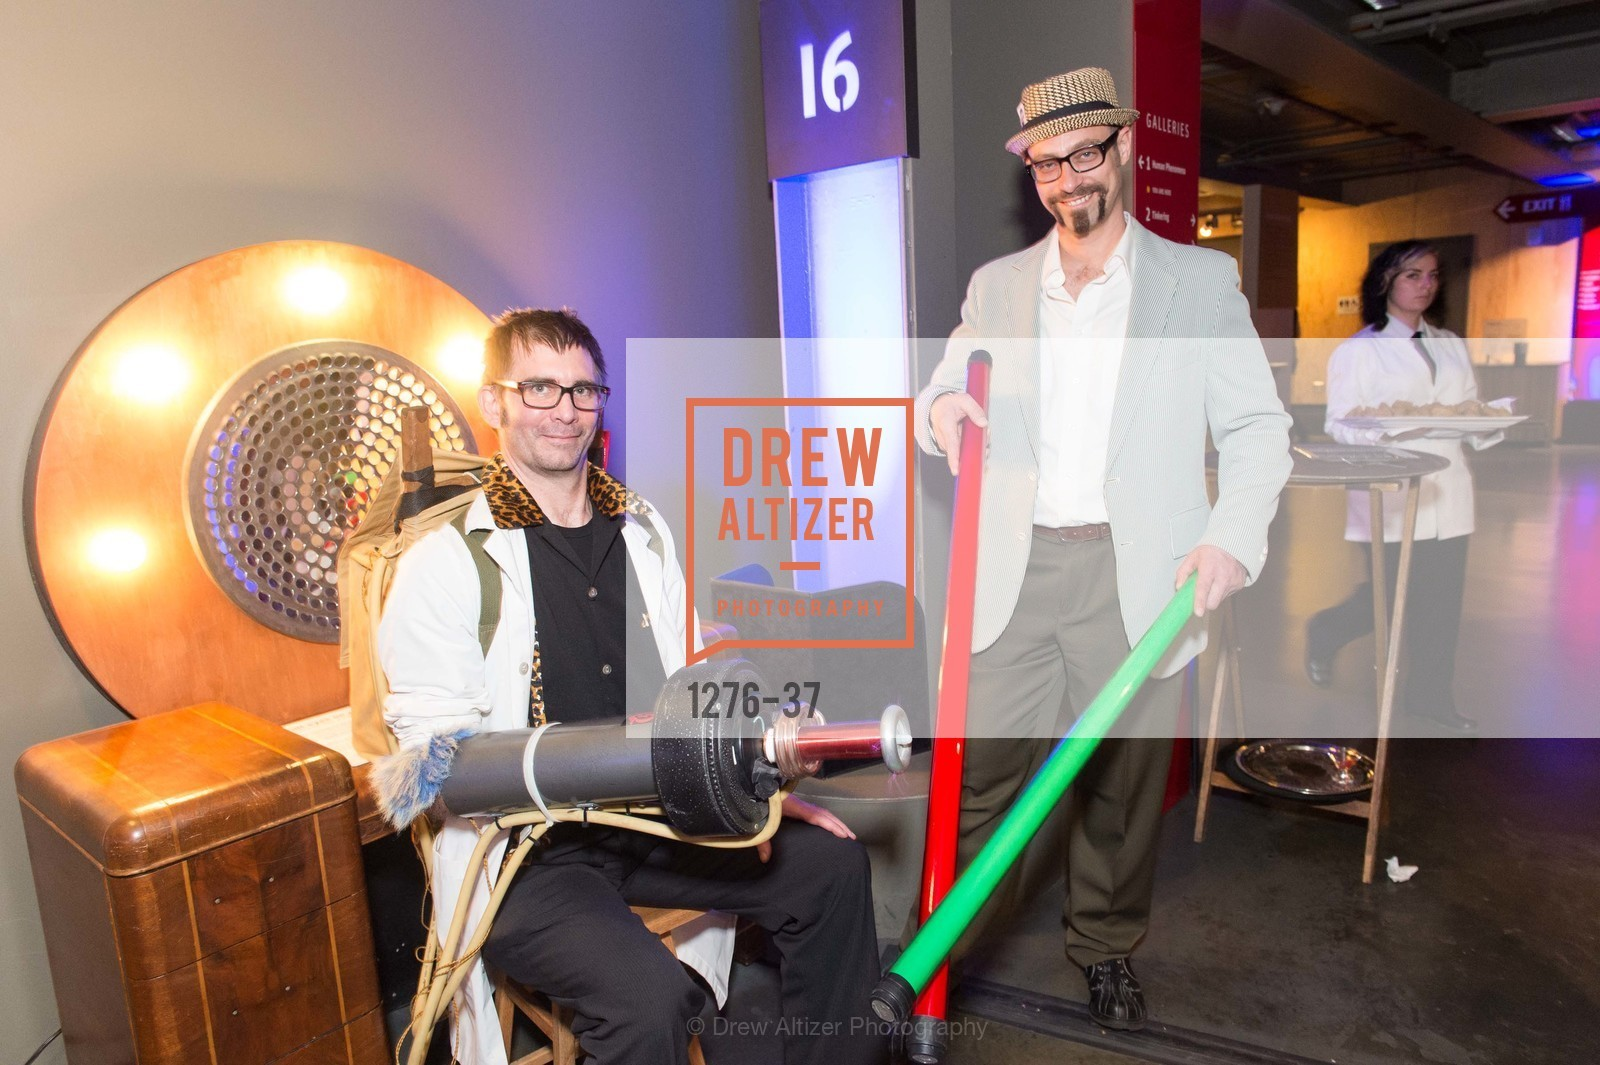 Extras, EXPLORATORIUM SPRING GALA: Catalyze Your Curiosity, April 16th, 2015, Photo